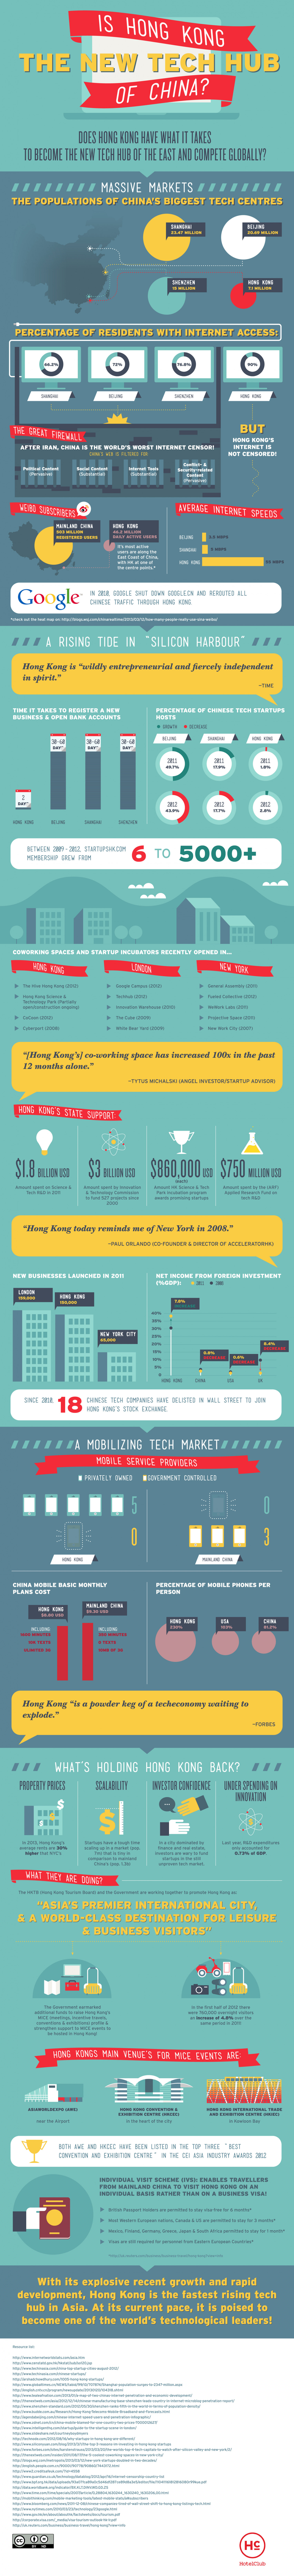 Is Hong Kong The New Tech Hub of China? Infographic